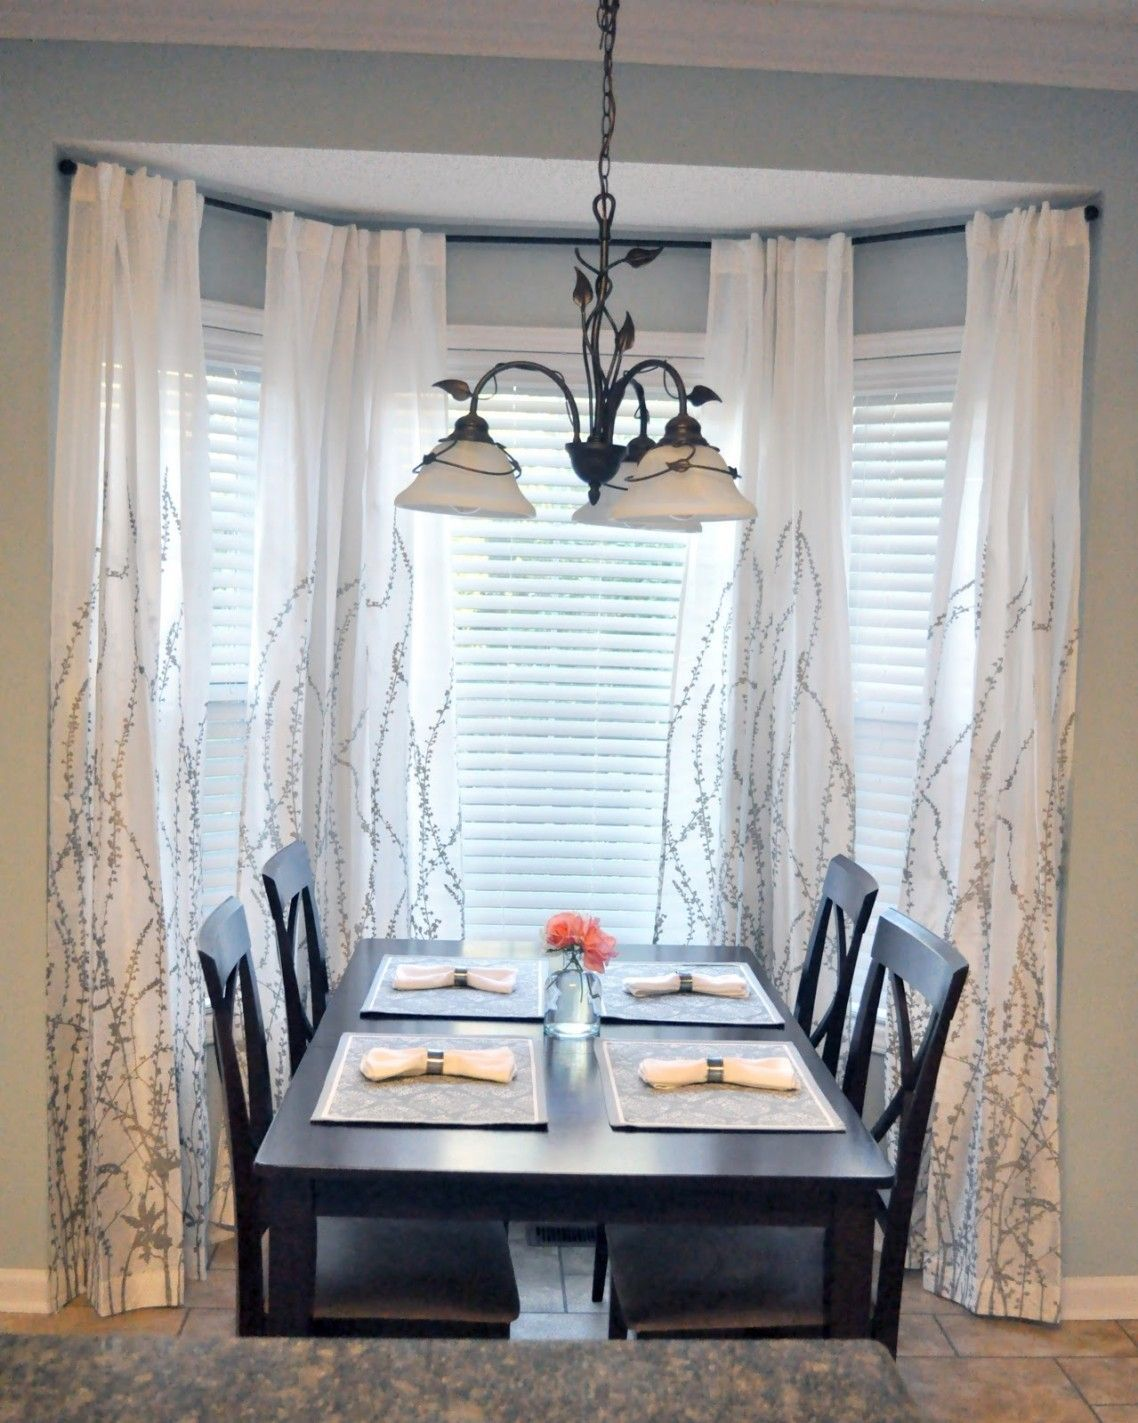 Curtain Styles Mini Blinds in 2020 | Dining room window ...